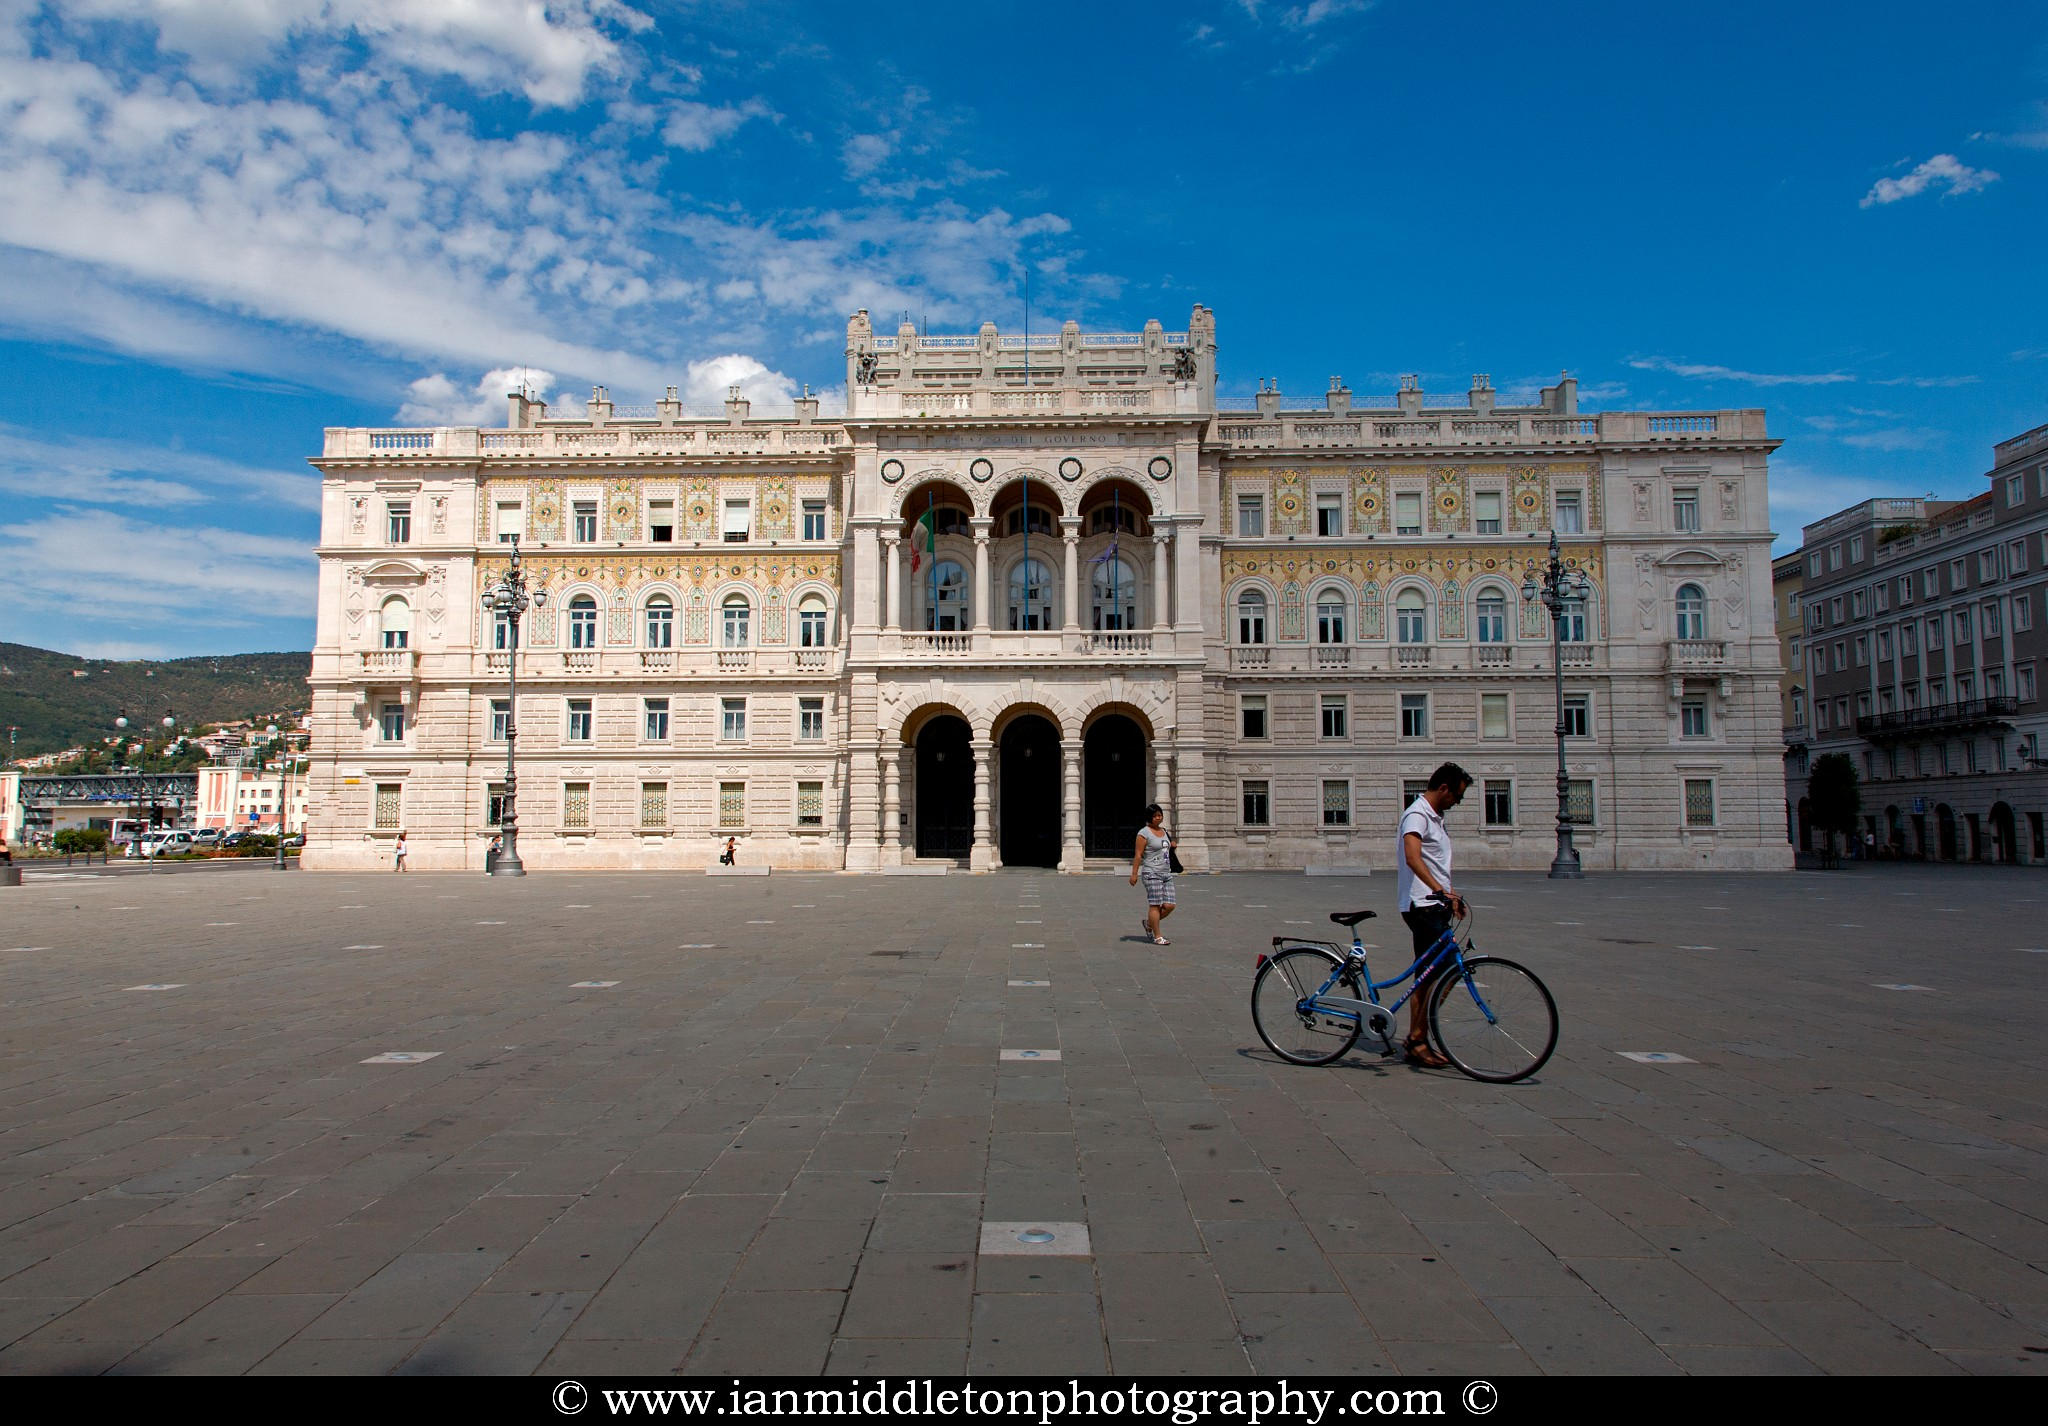 The government palace (Commissariato Palazzo Del Governo Nella Regione Friuli-Venezia Giulia) in Piazza unita d'italia, Trieste, Italy. This is the main town square in Trieste and this is just one example of the beautiful ornate architecture in this wonderful little port town on the Adriatic.